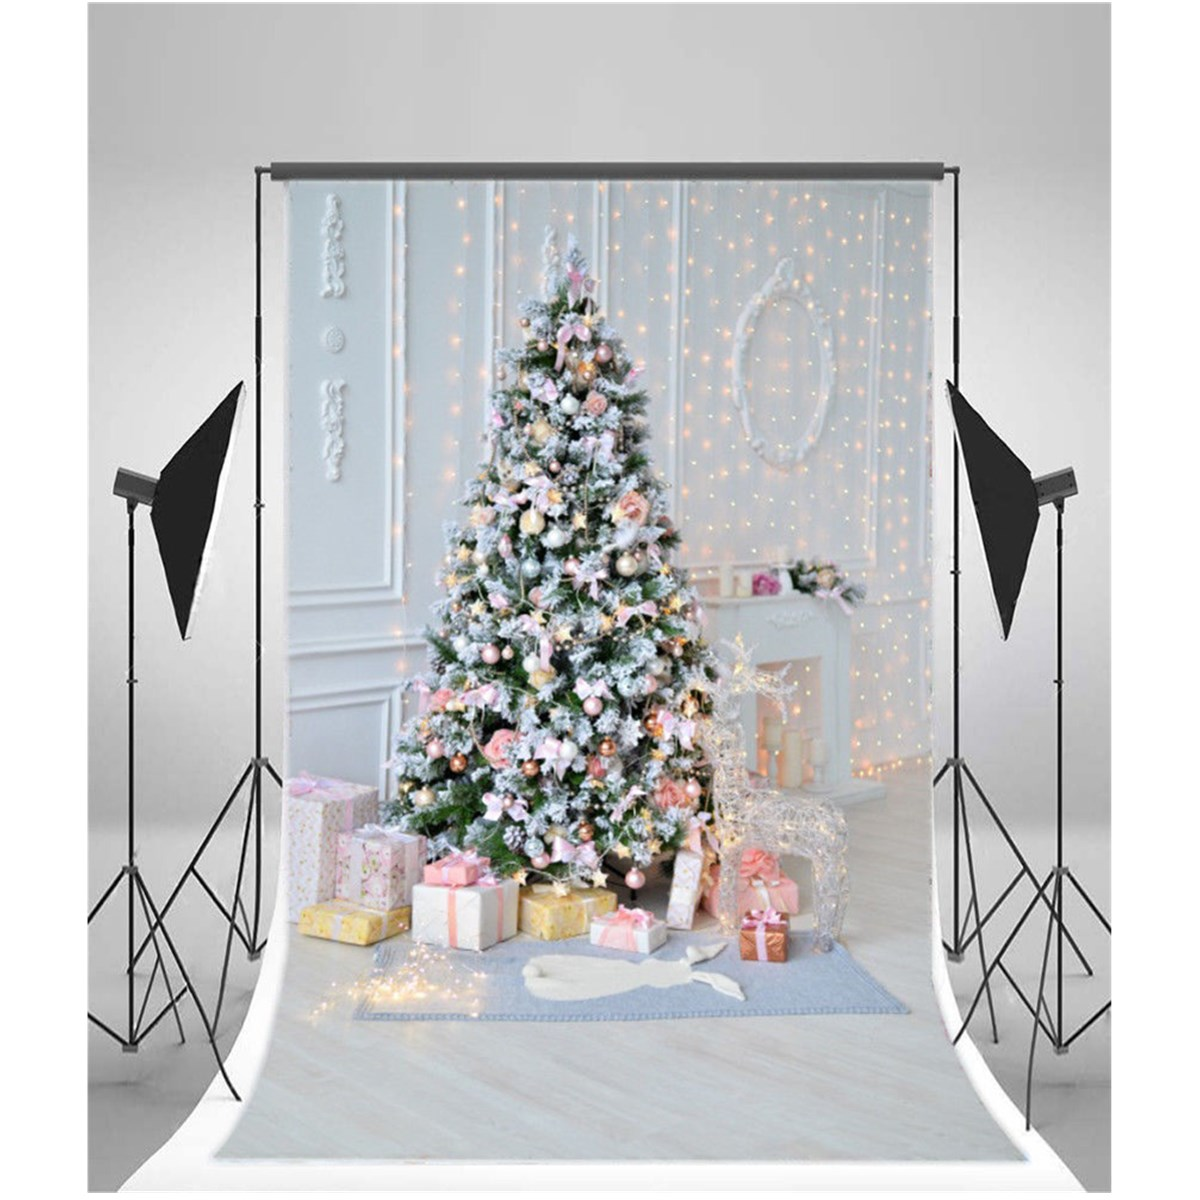 5x7-3x5FT-Baby-Wall-Photo-Background-Backdrop-Studio-Photography-Prop-Christmas